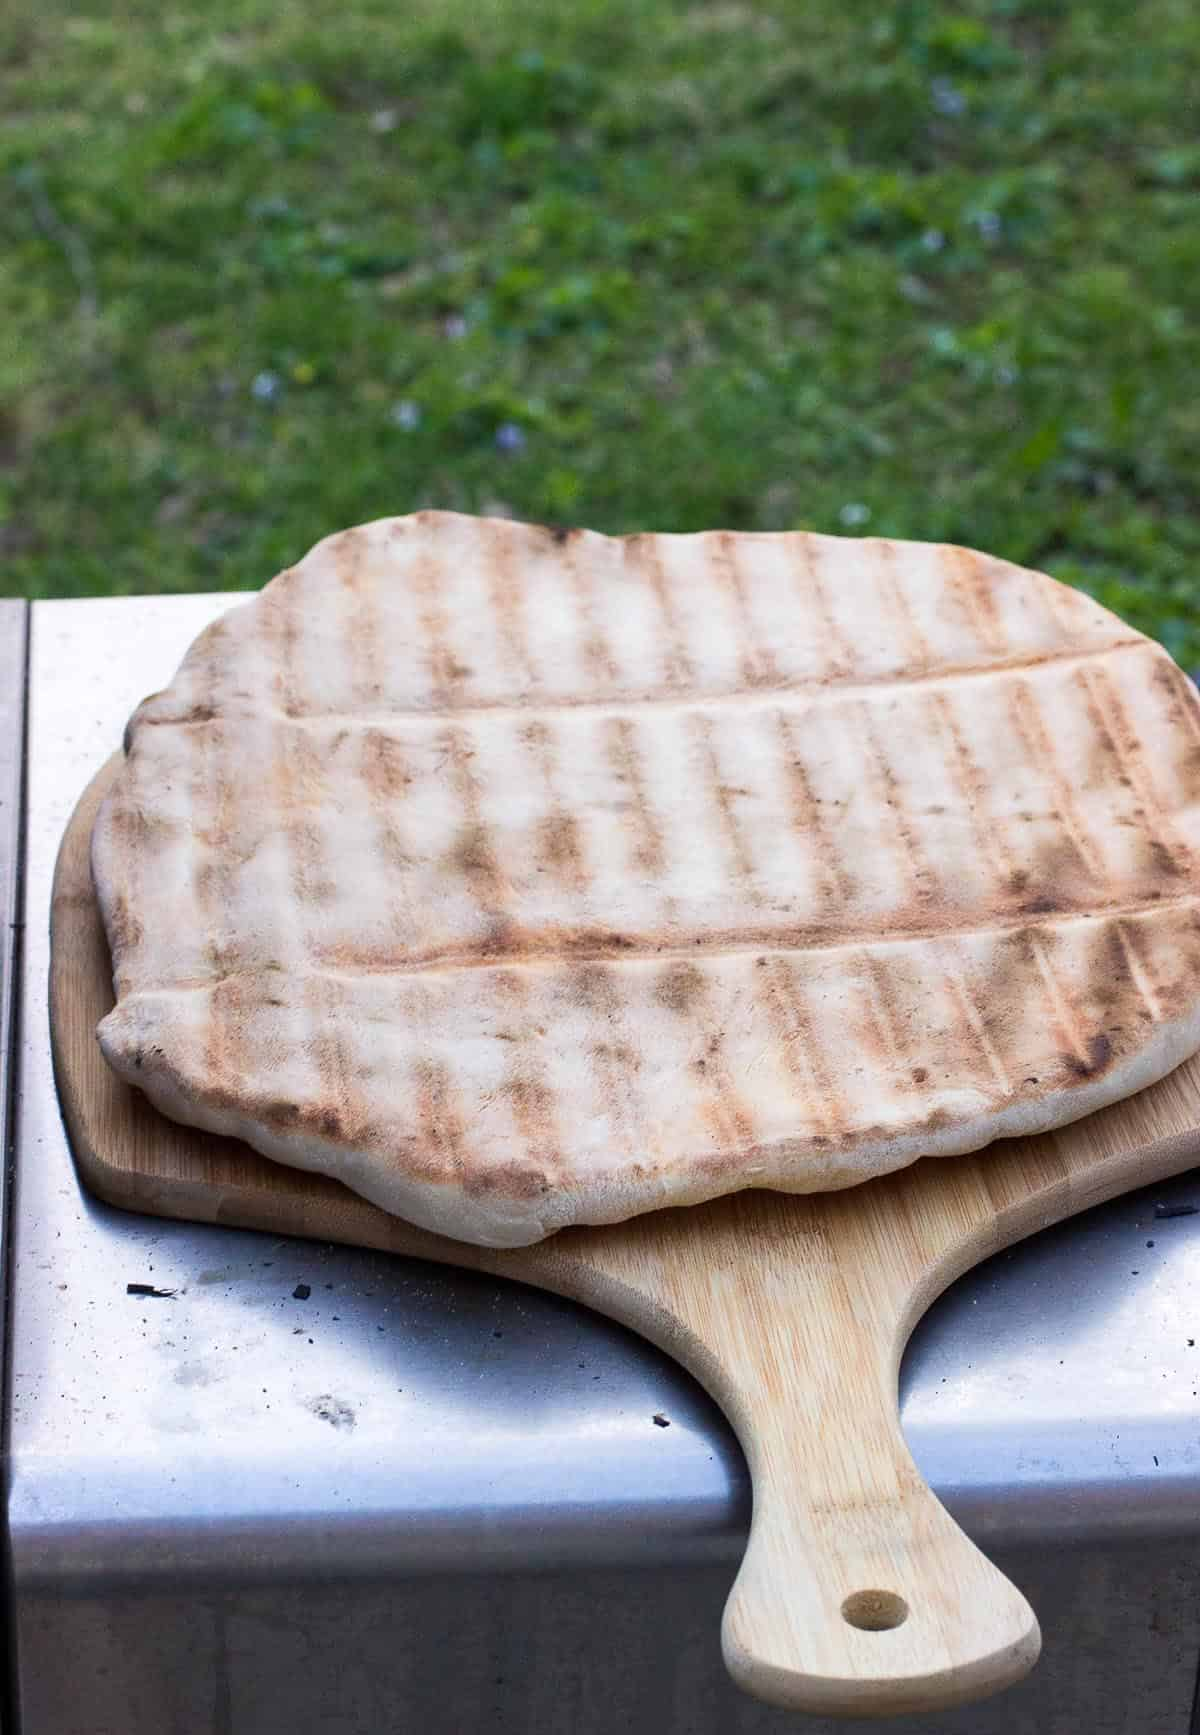 Pizza crust, cooked side up, on a pizza peel.